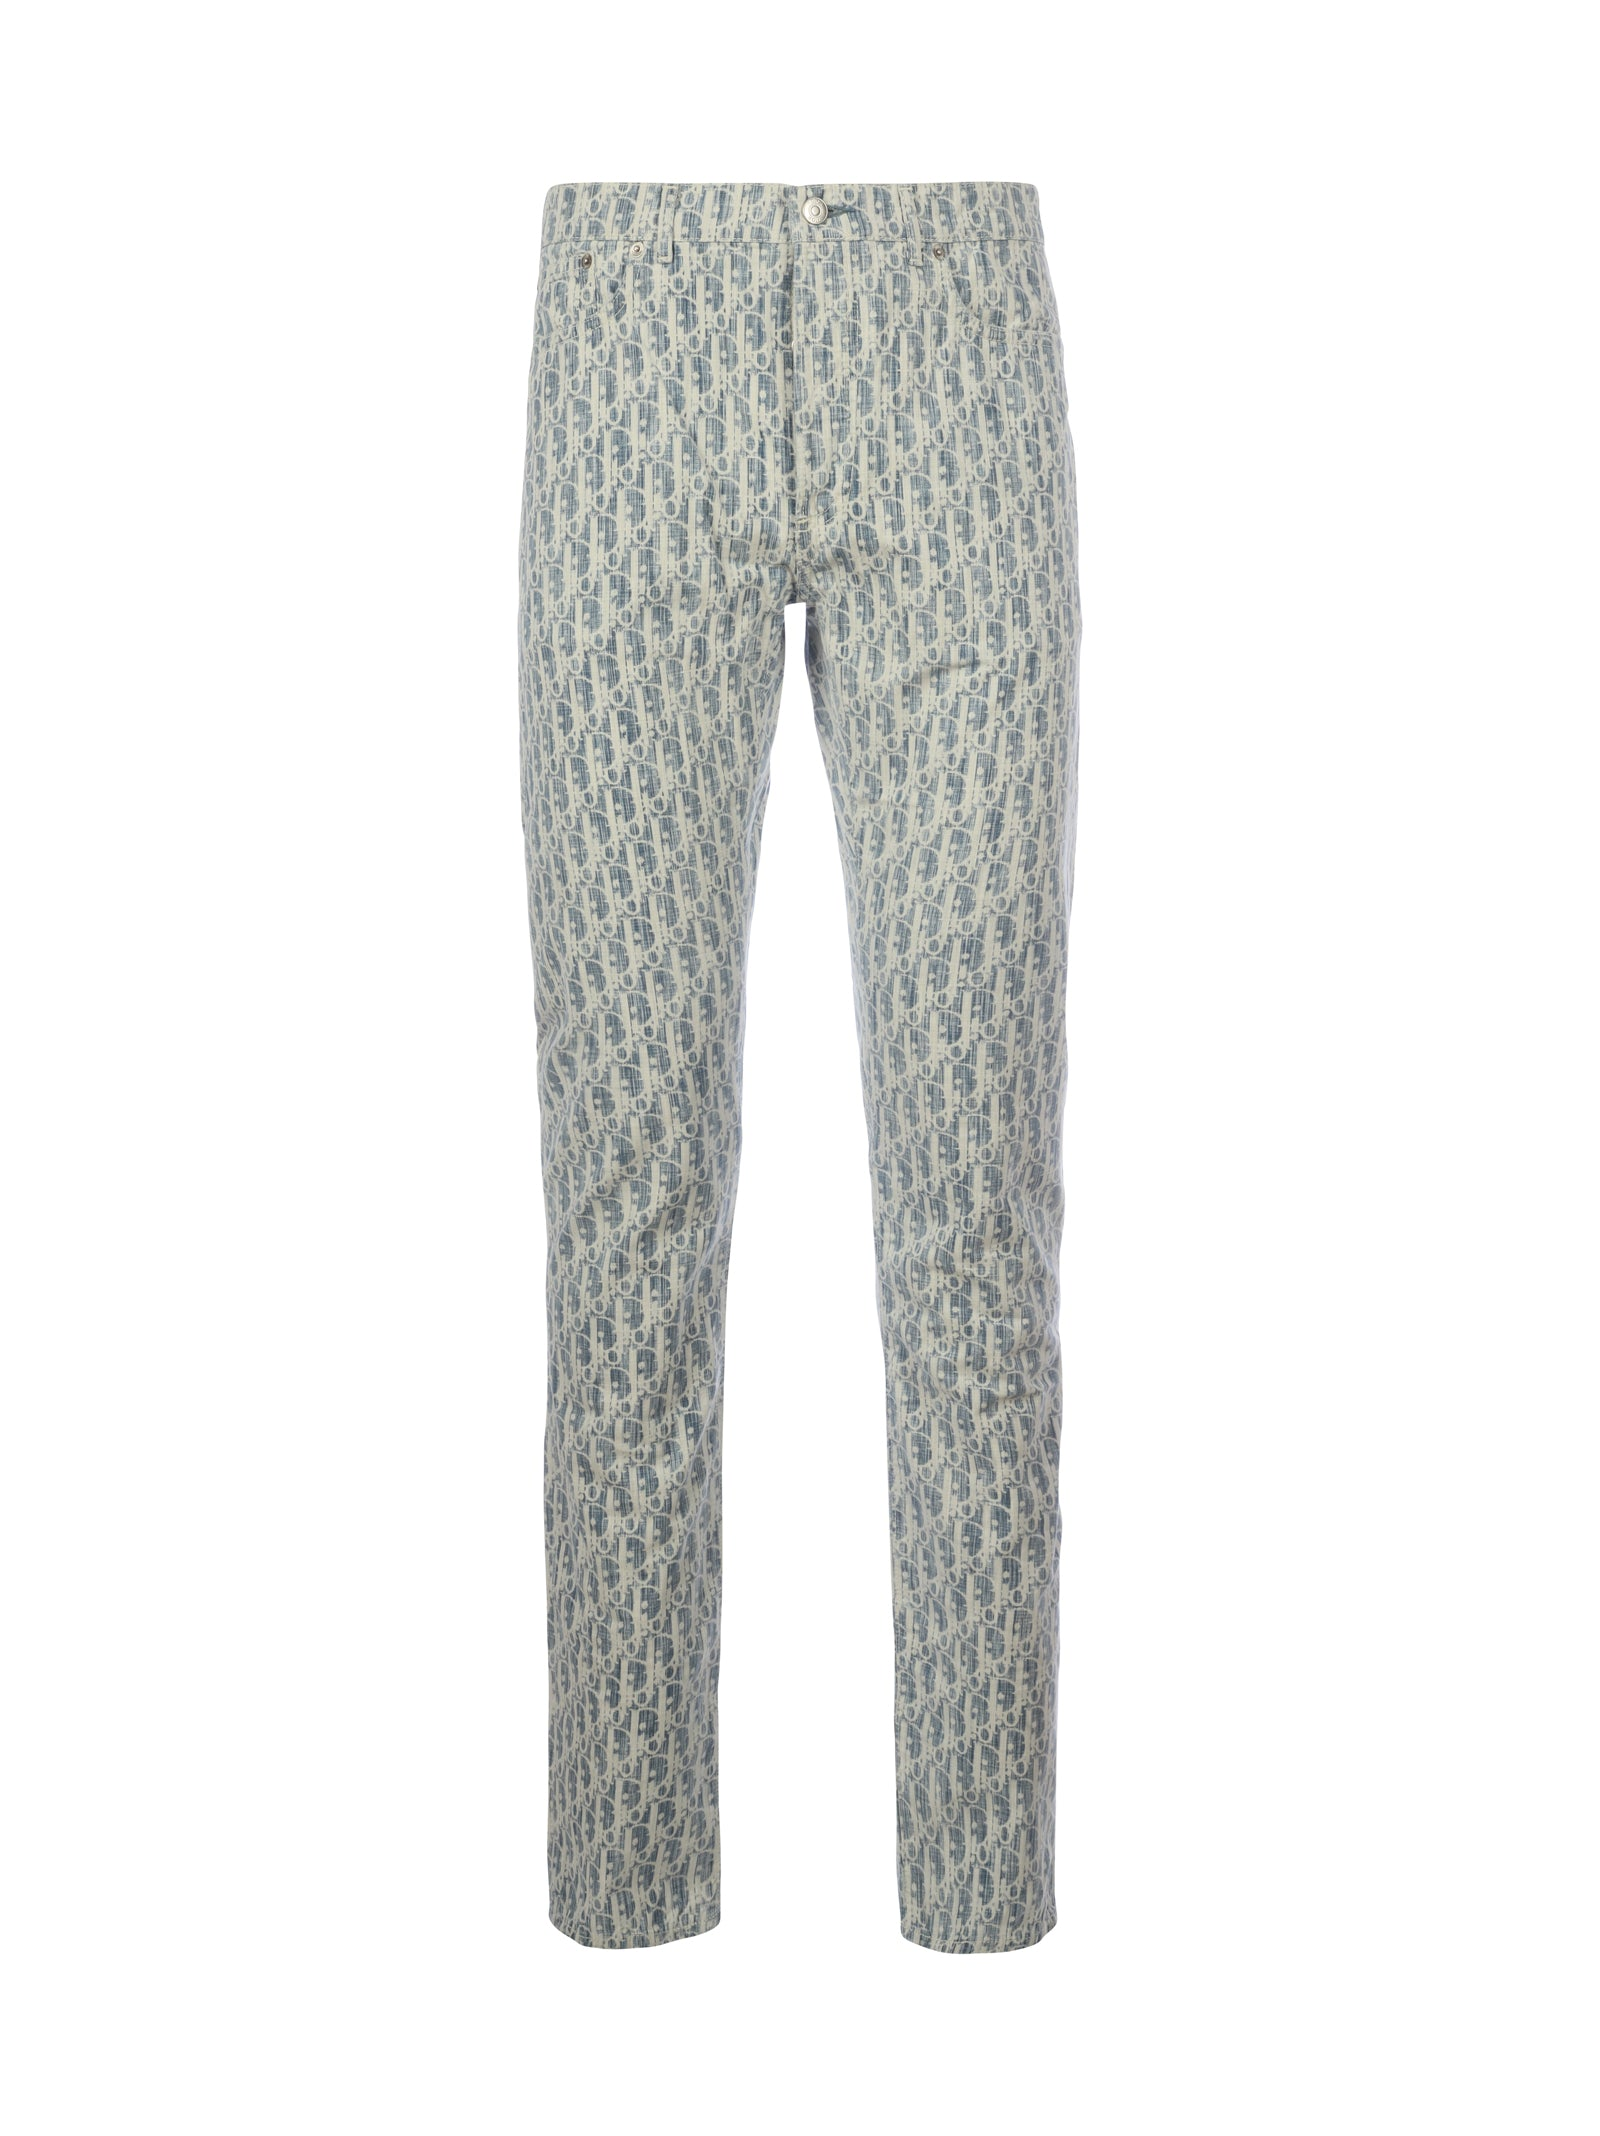 trousers with dior oblique logo